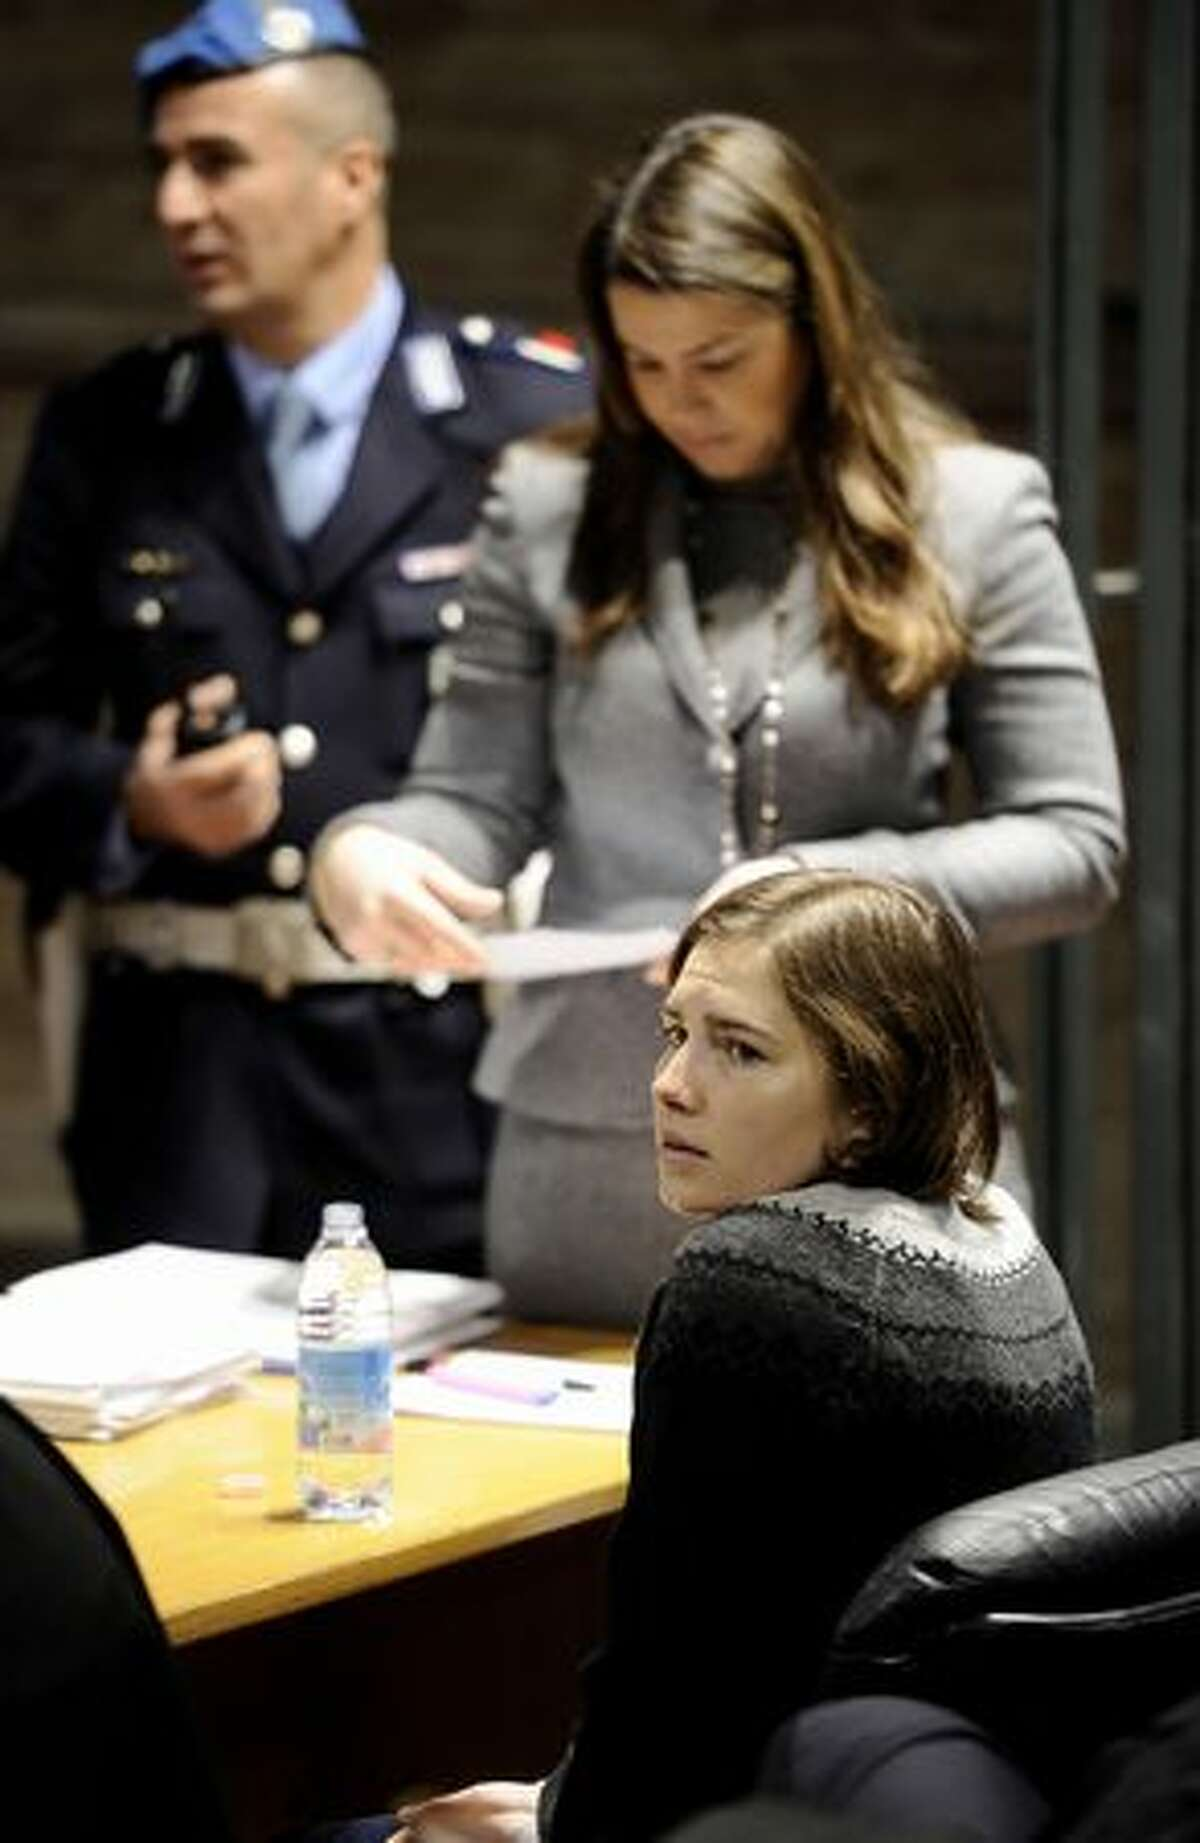 Amanda Knox (right) sits in court before the start of the second hearing of her appeal trial.